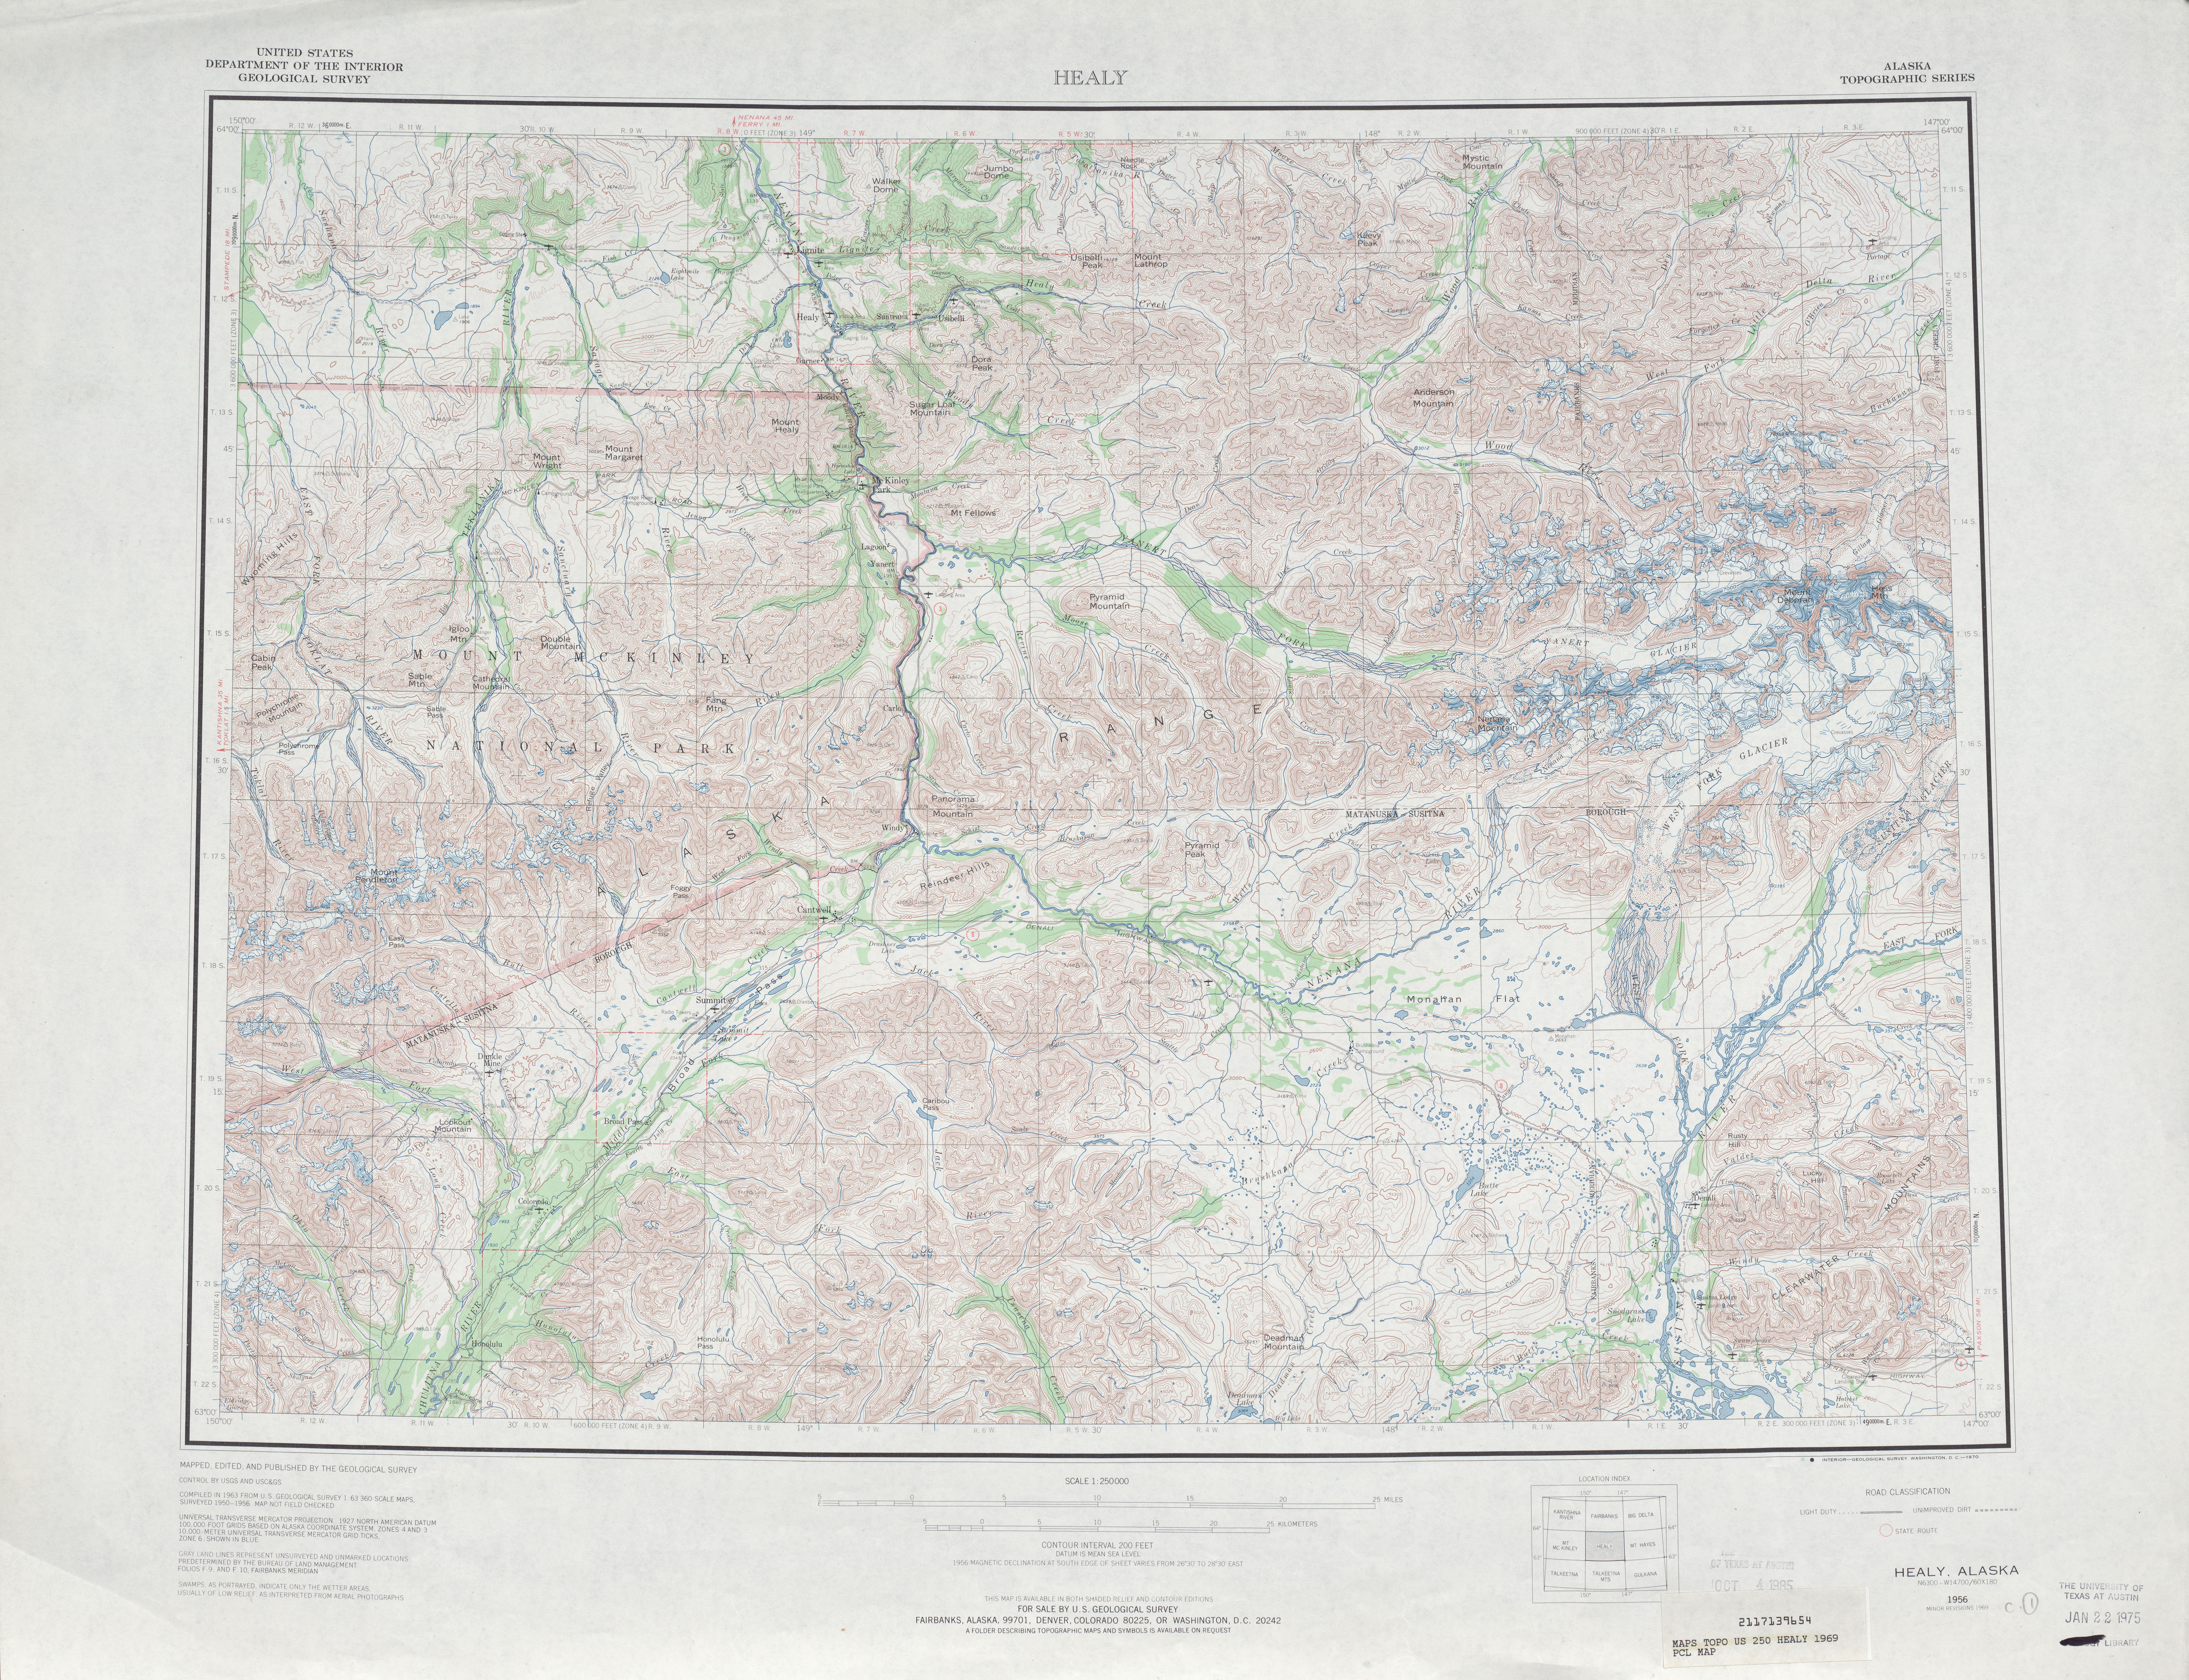 Healy Topographic Map Sheet, United States 1969